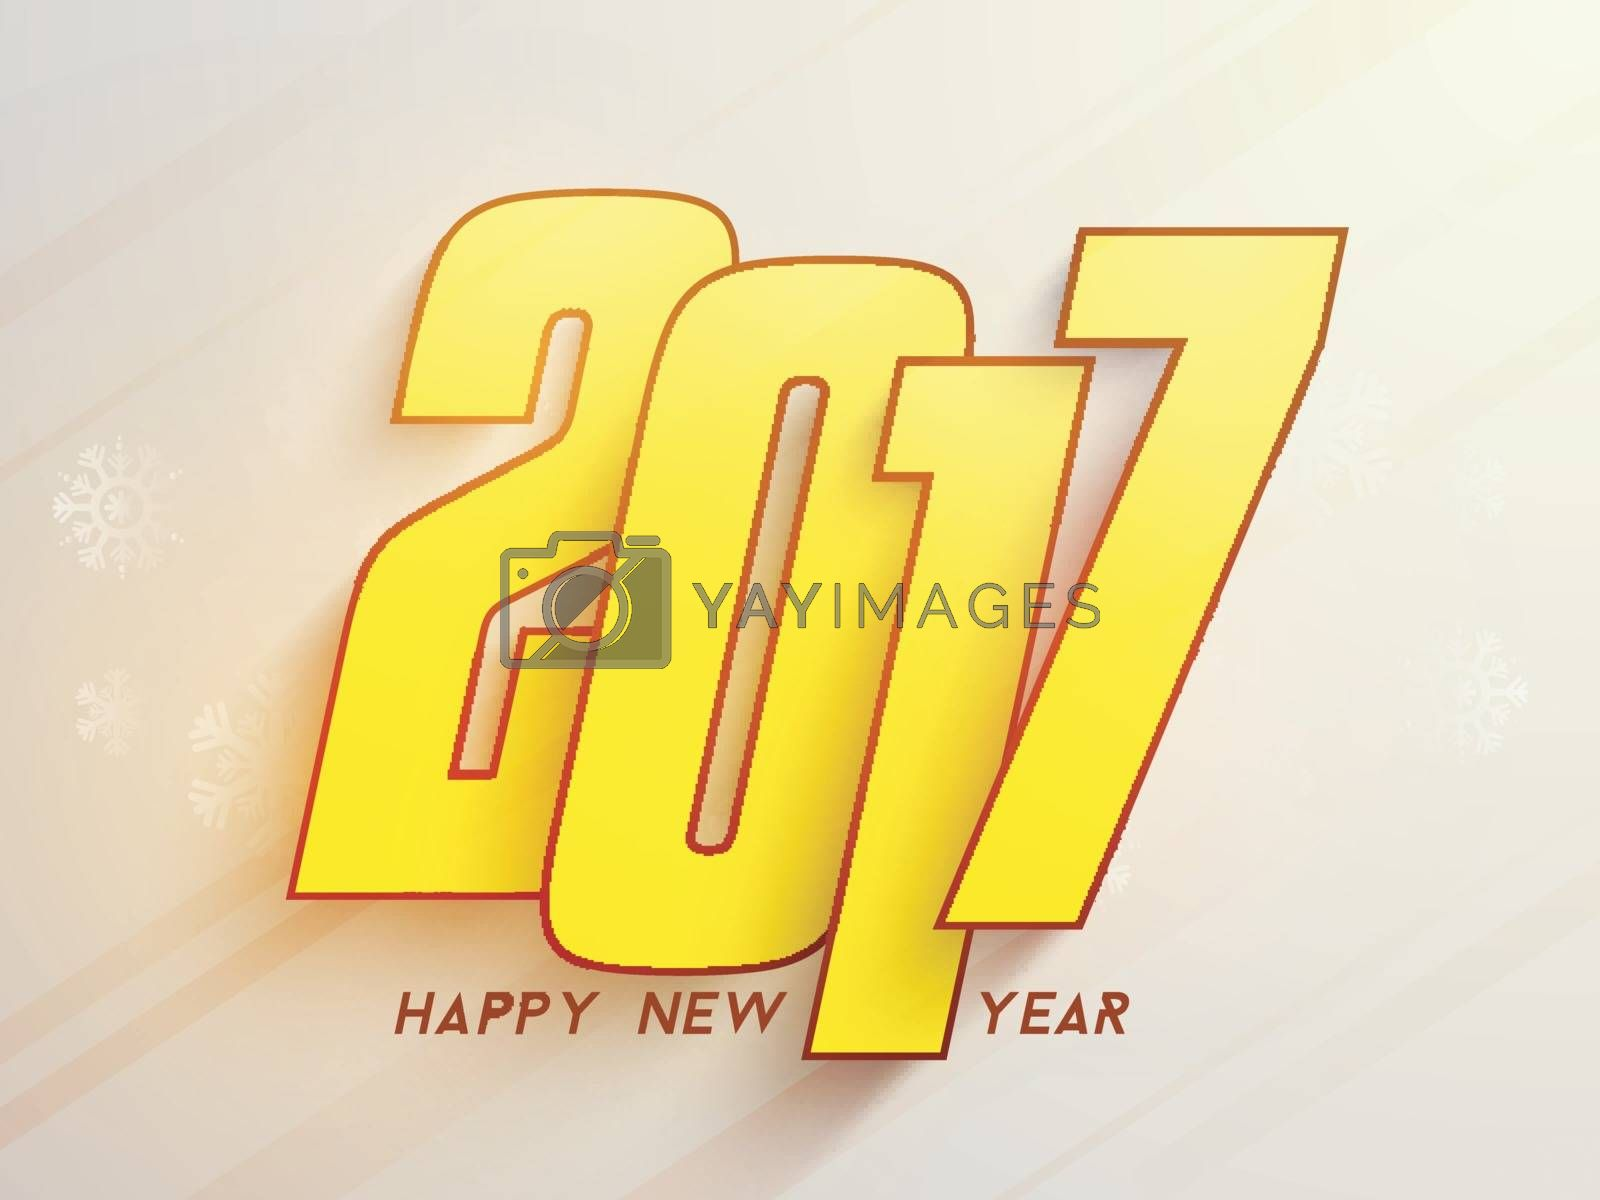 Greeting card with yellow text 2017 on snowflakes decorated background for Happy New Year Celebration.